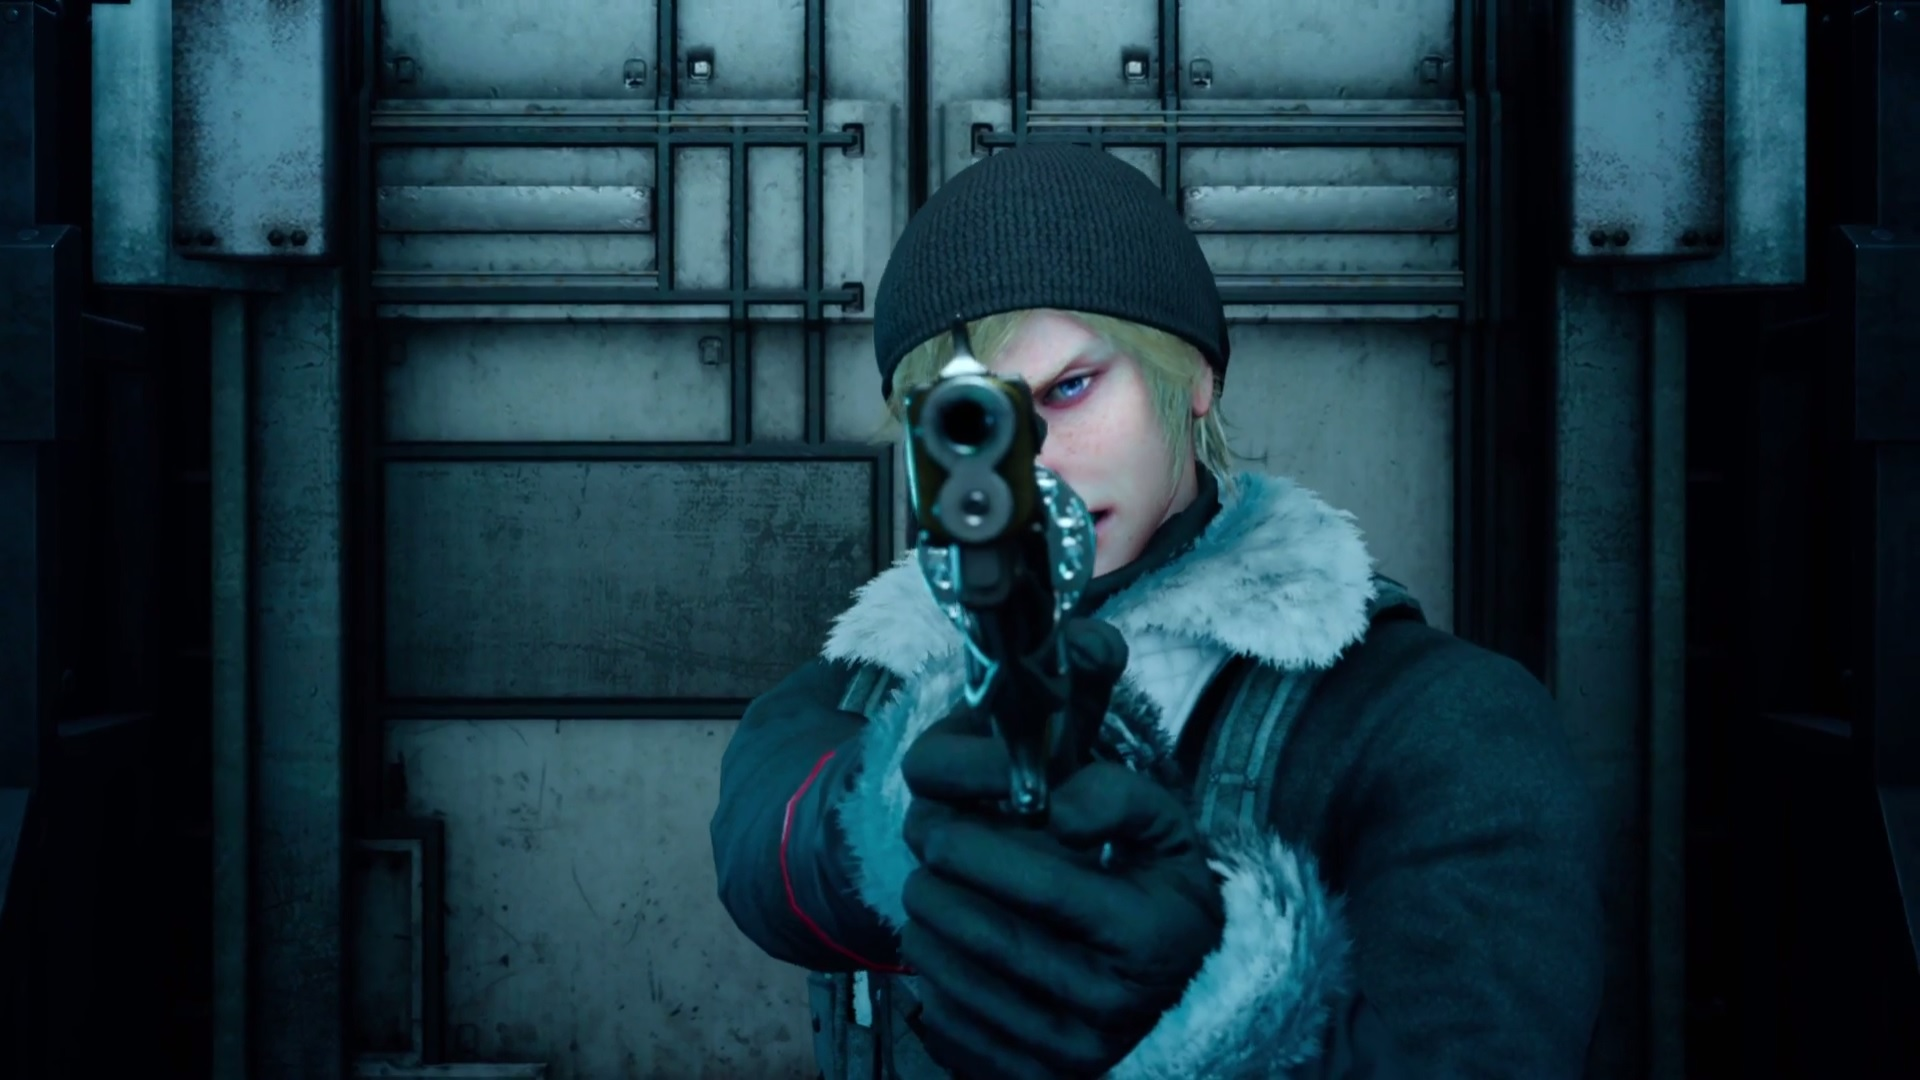 Final Fantasy XV Episode Prompto Is The Second Paid Post Release DLC And Will On June 27th Today Square Enix Has Shared A New Trailer That